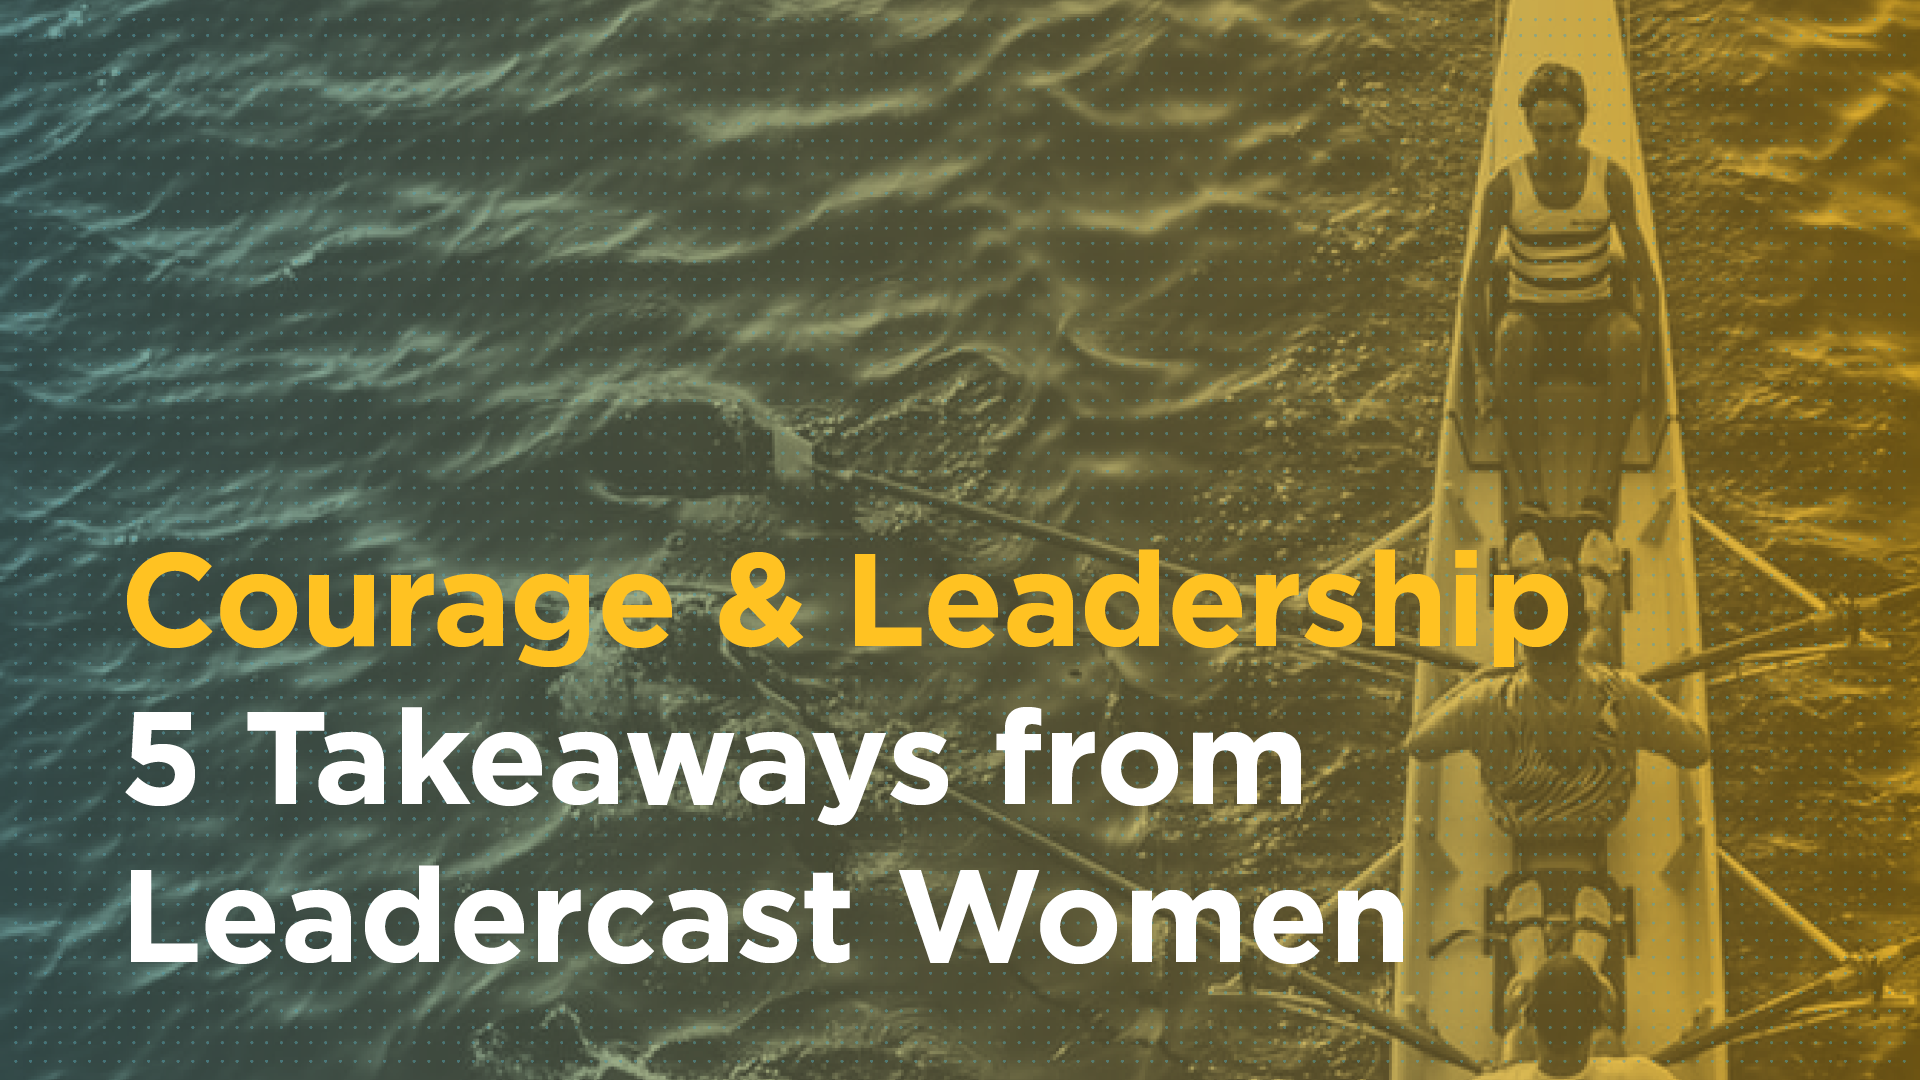 Courage & Leadership: 5 Takeaways from Leadercast Women Featured Image